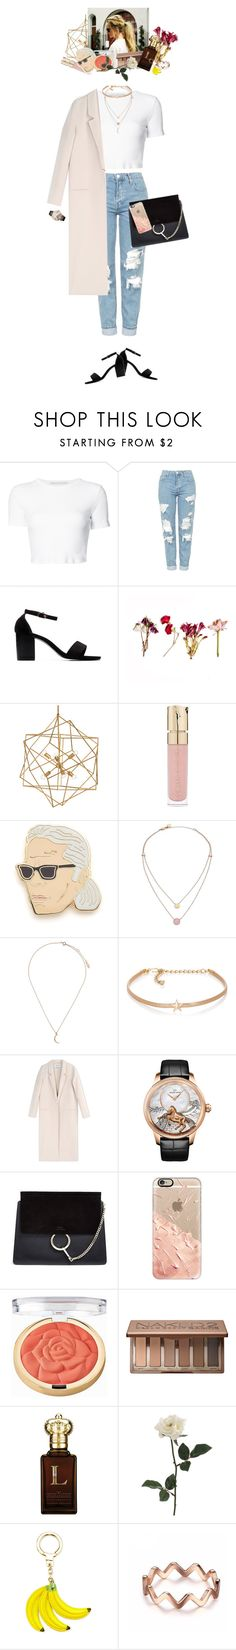 """""""rose gold accents"""" by megspiration ❤ liked on Polyvore featuring Rosetta Getty, Topshop, Smith & Cult, Georgia Perry, Michael Kors, Kenneth Jay Lane, Acne Studios, Jaquet Droz, Chloé and Casetify"""